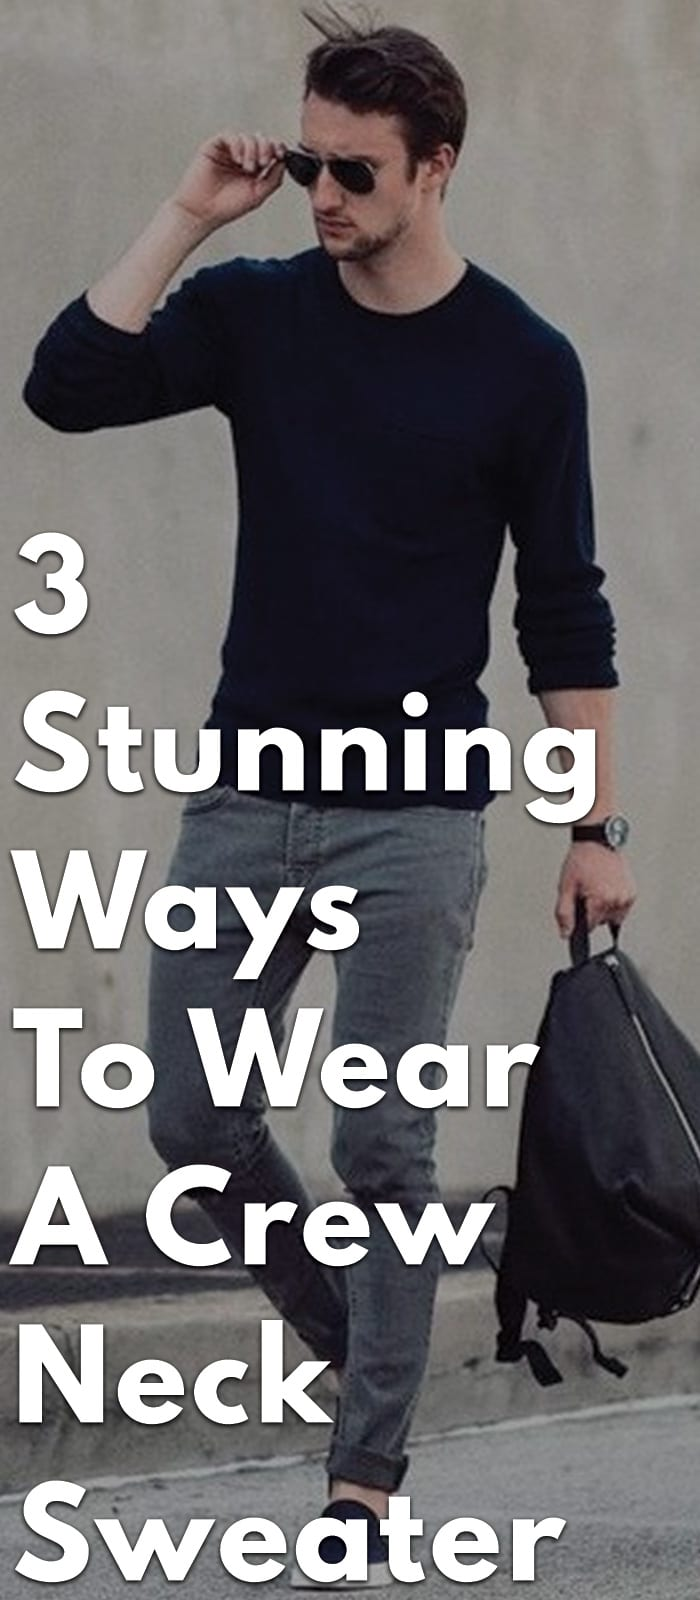 3-Stunning-Ways-to-Wear-a-Crew-Neck-Sweater